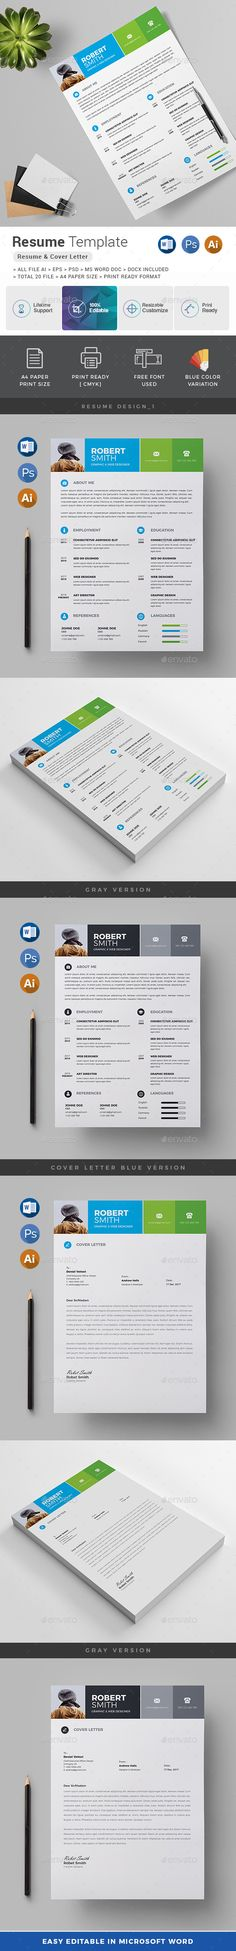 How To Make A Resume In Word Resume Word Template For Who Those Don't Have Time To Create A .